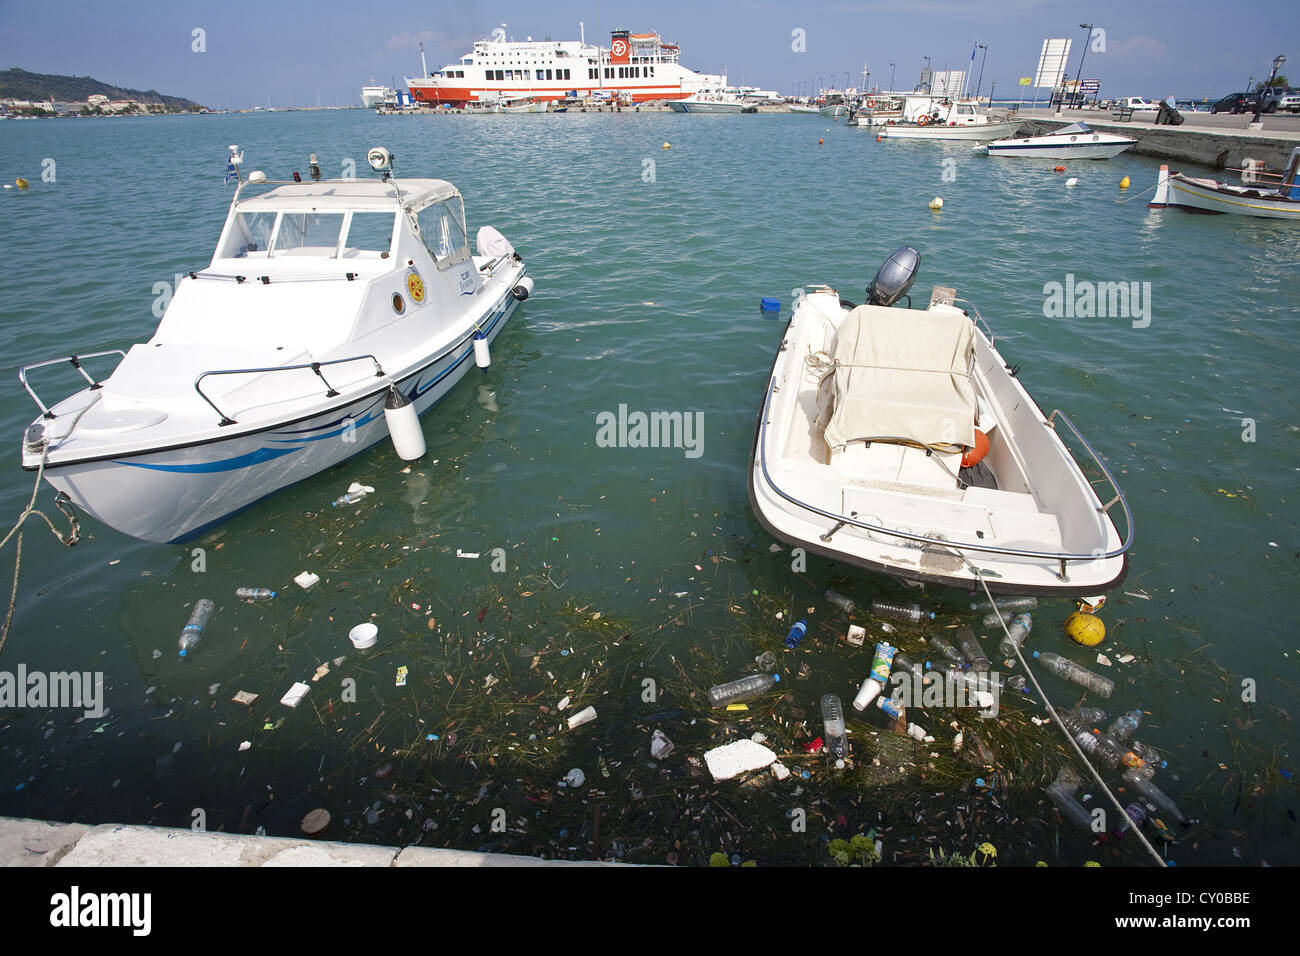 Civilisation rubbish floating in the harbour or Zakynthos town, Island of Zakynthos or Zante, Greece, Europe - Stock Image